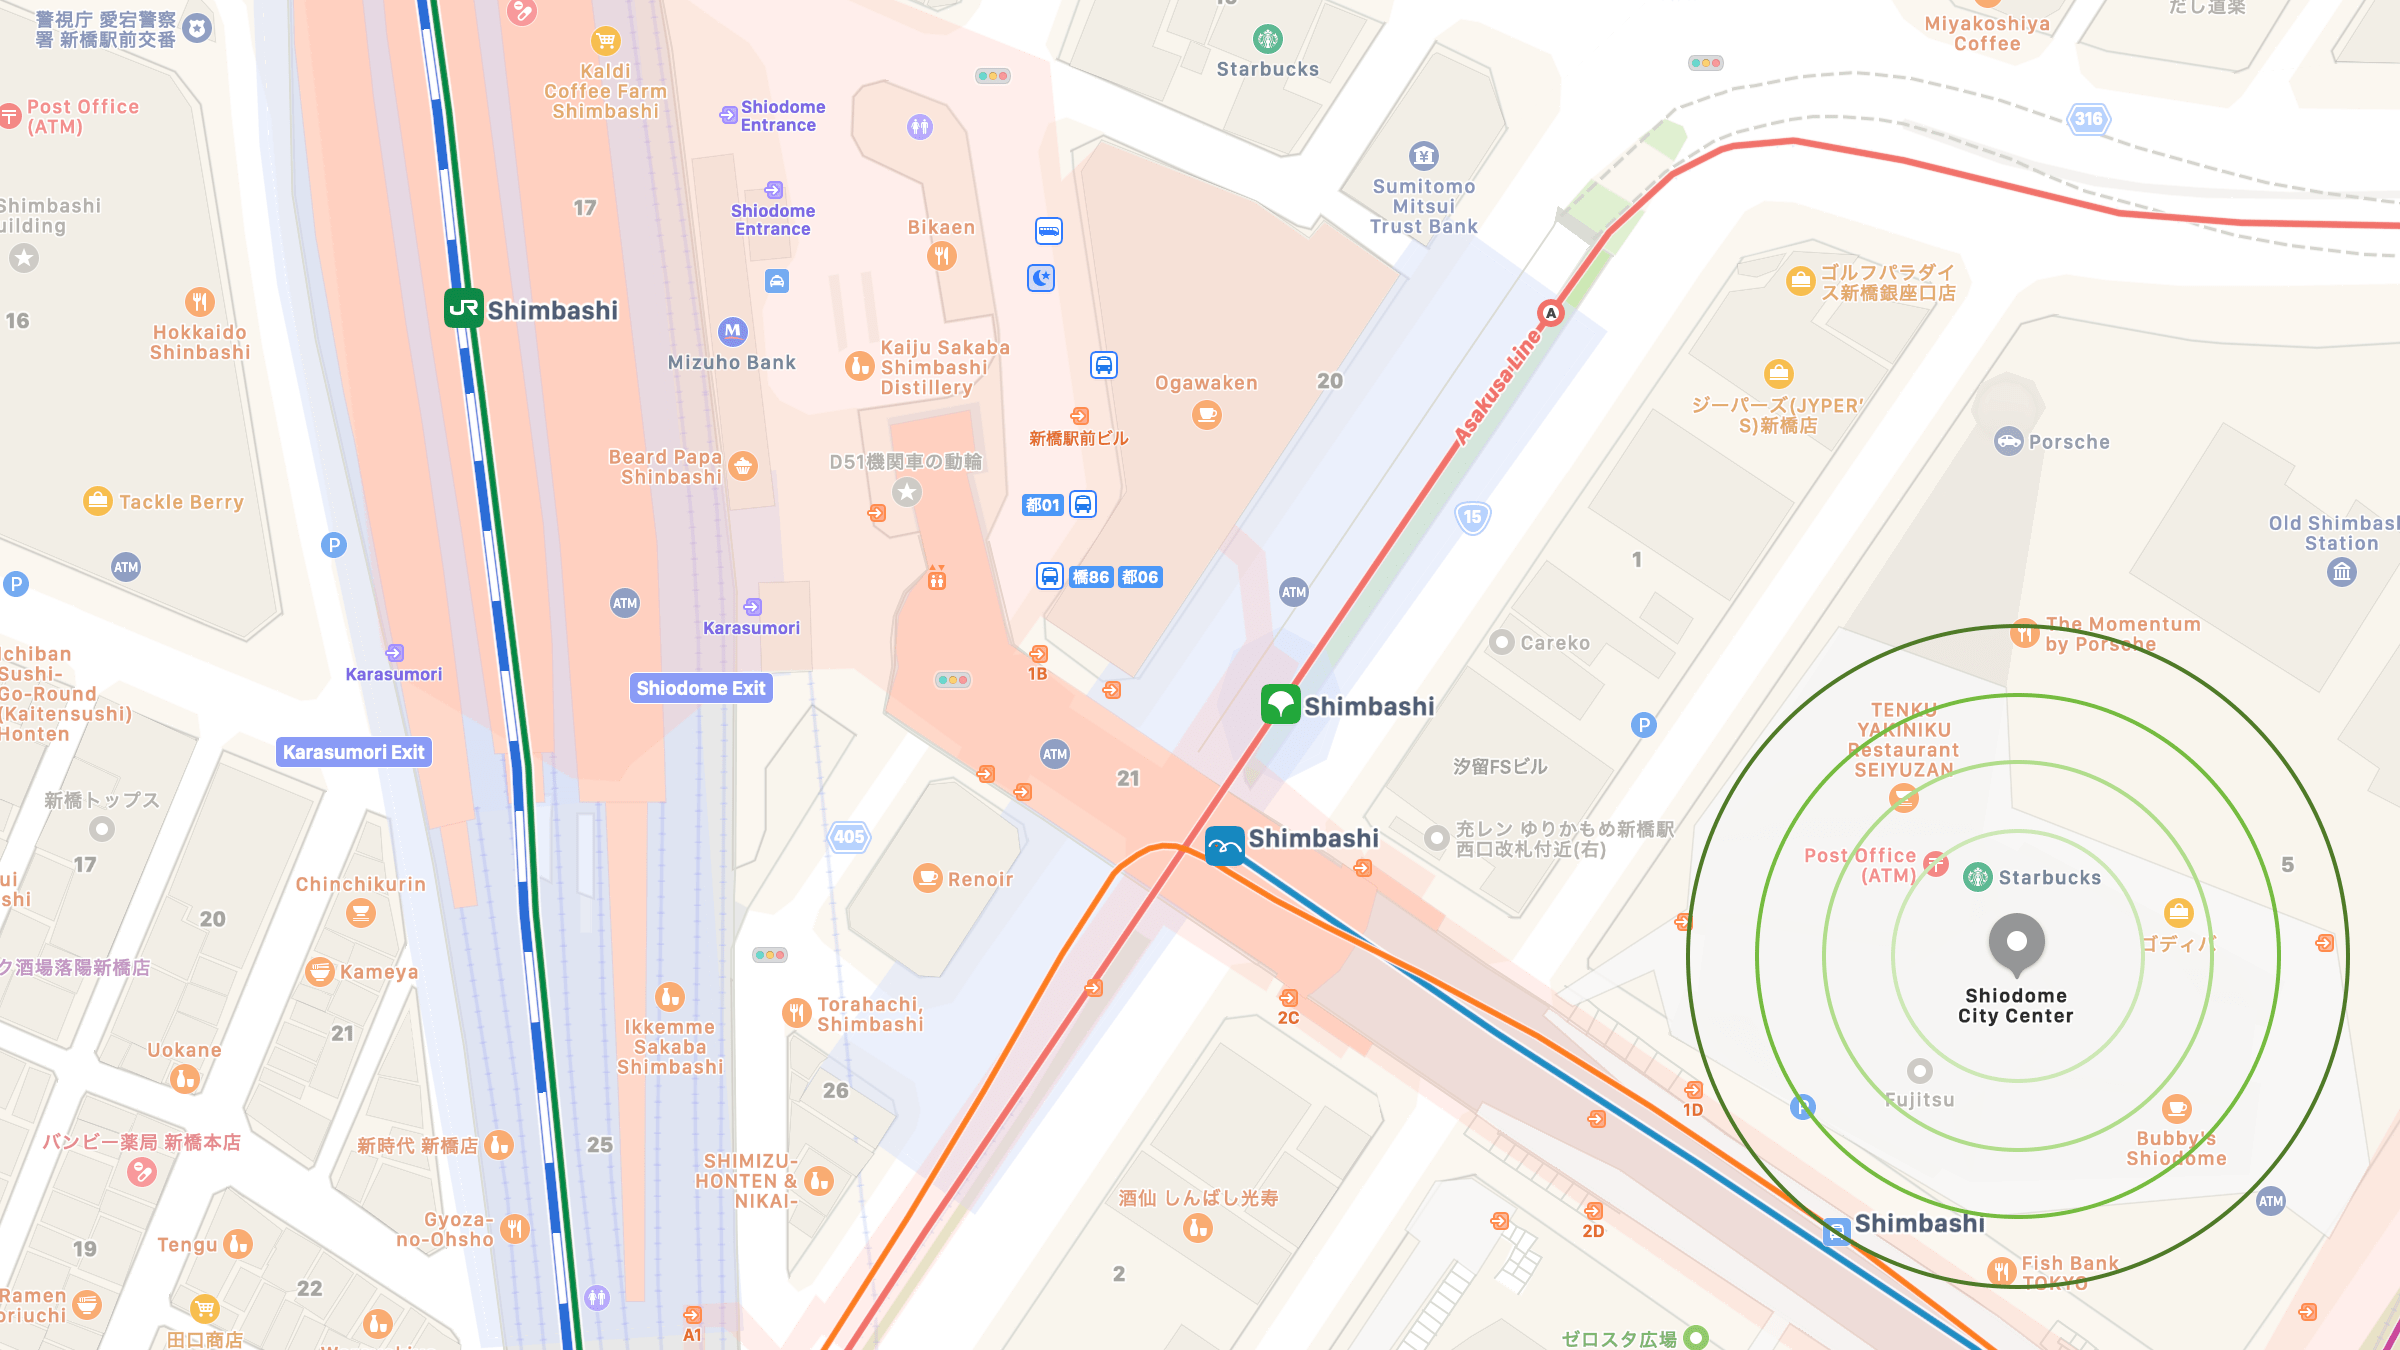 Screenshot of map of area around eSolia office in the Shiodome City Center, including JR Shimbashi Rail station.